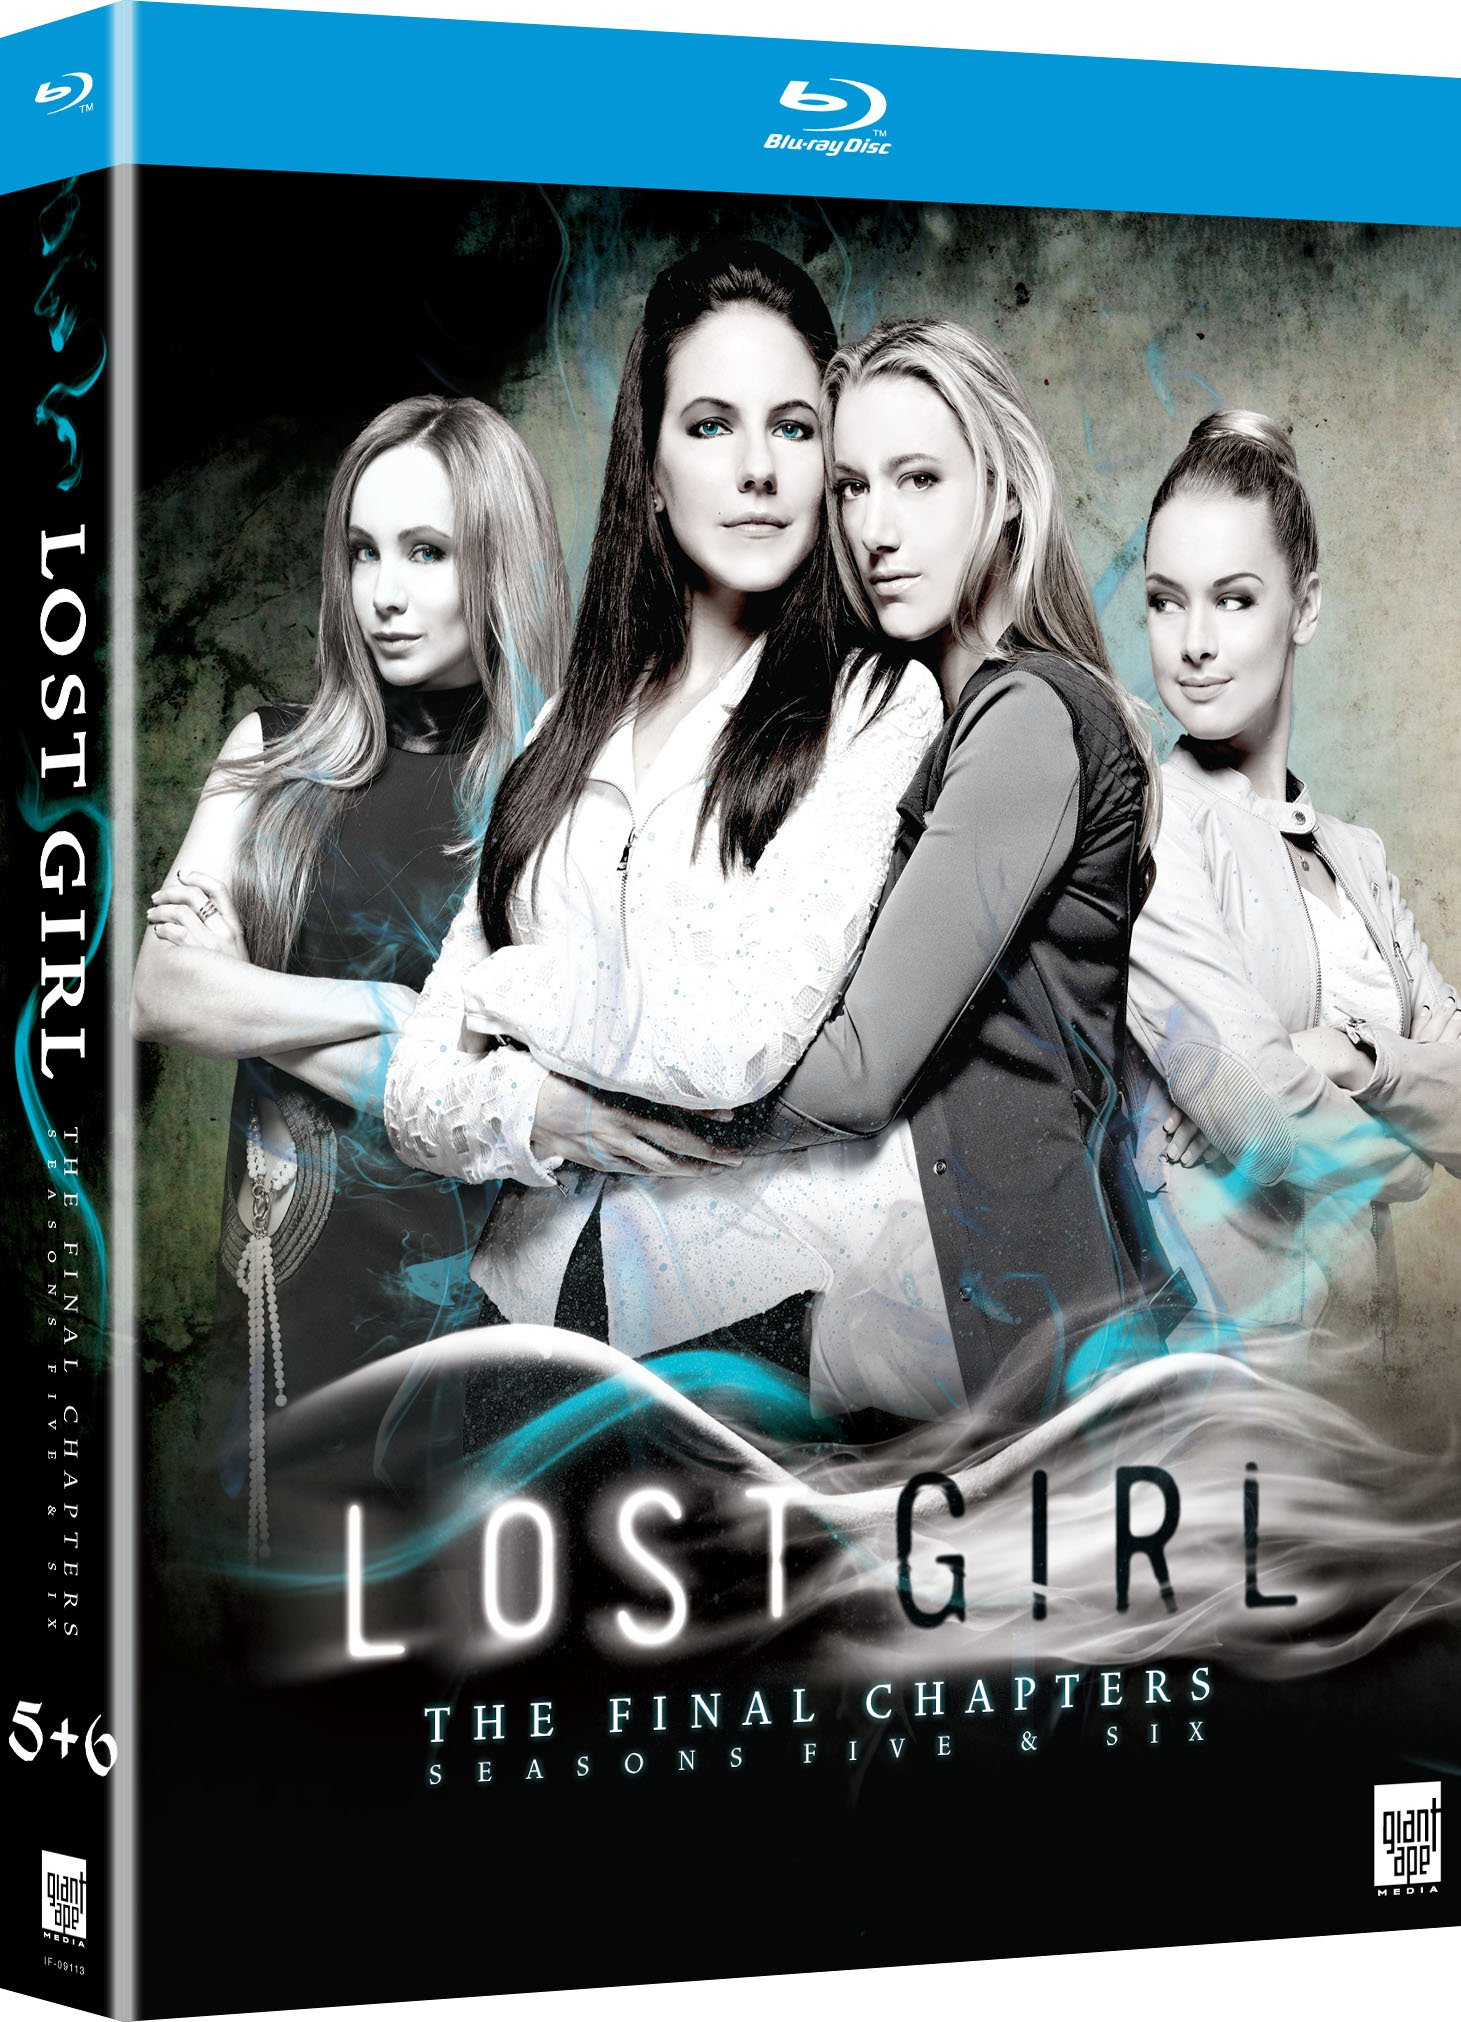 Lost Girl: The Final Chapters - Season Five & Six [Blu-ray]